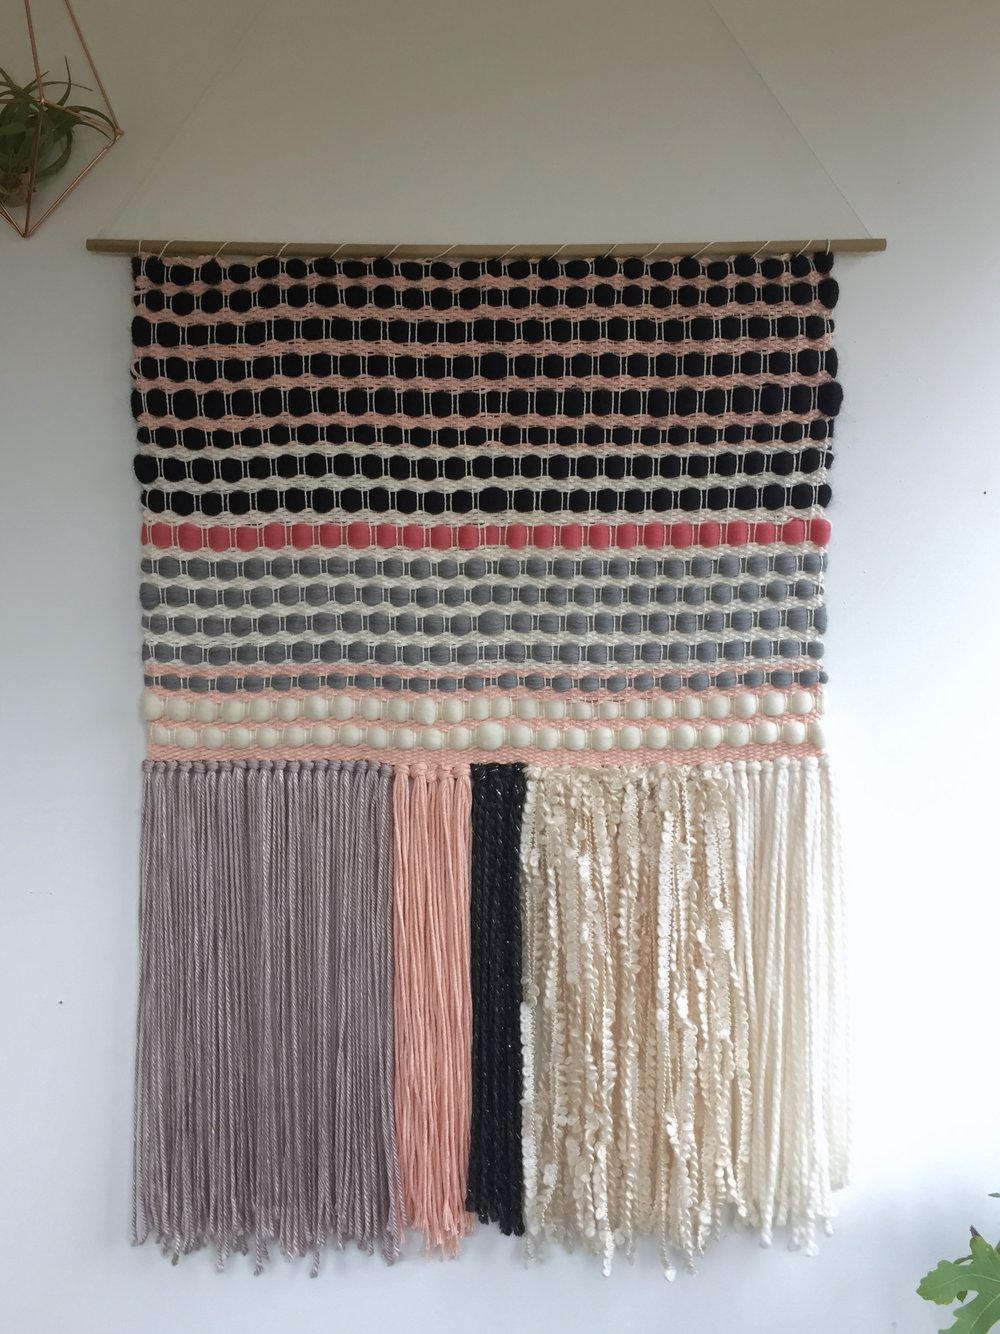 Kate Koconis - (@kkoconis)'Untitled', 2017Kate Koconis lives and works out of her home studio in Providence Forge, VA. She is responsible for all things Little Black Sheep Studio. All the ideas, designs and finished products come from her two hands. She has been weaving for over 10 years now, and loves it just as much as the first day she discovered this craft. Using natural materials and traditional techniques, Kate creates modern unique pieces that can fit into any space. Her goal is to make beautiful items created honestly, to make you feel at ease with your surroundings.  Each piece is one of a kind, handmade with the utmost of care, to ensure they will last a lifetime (or more).